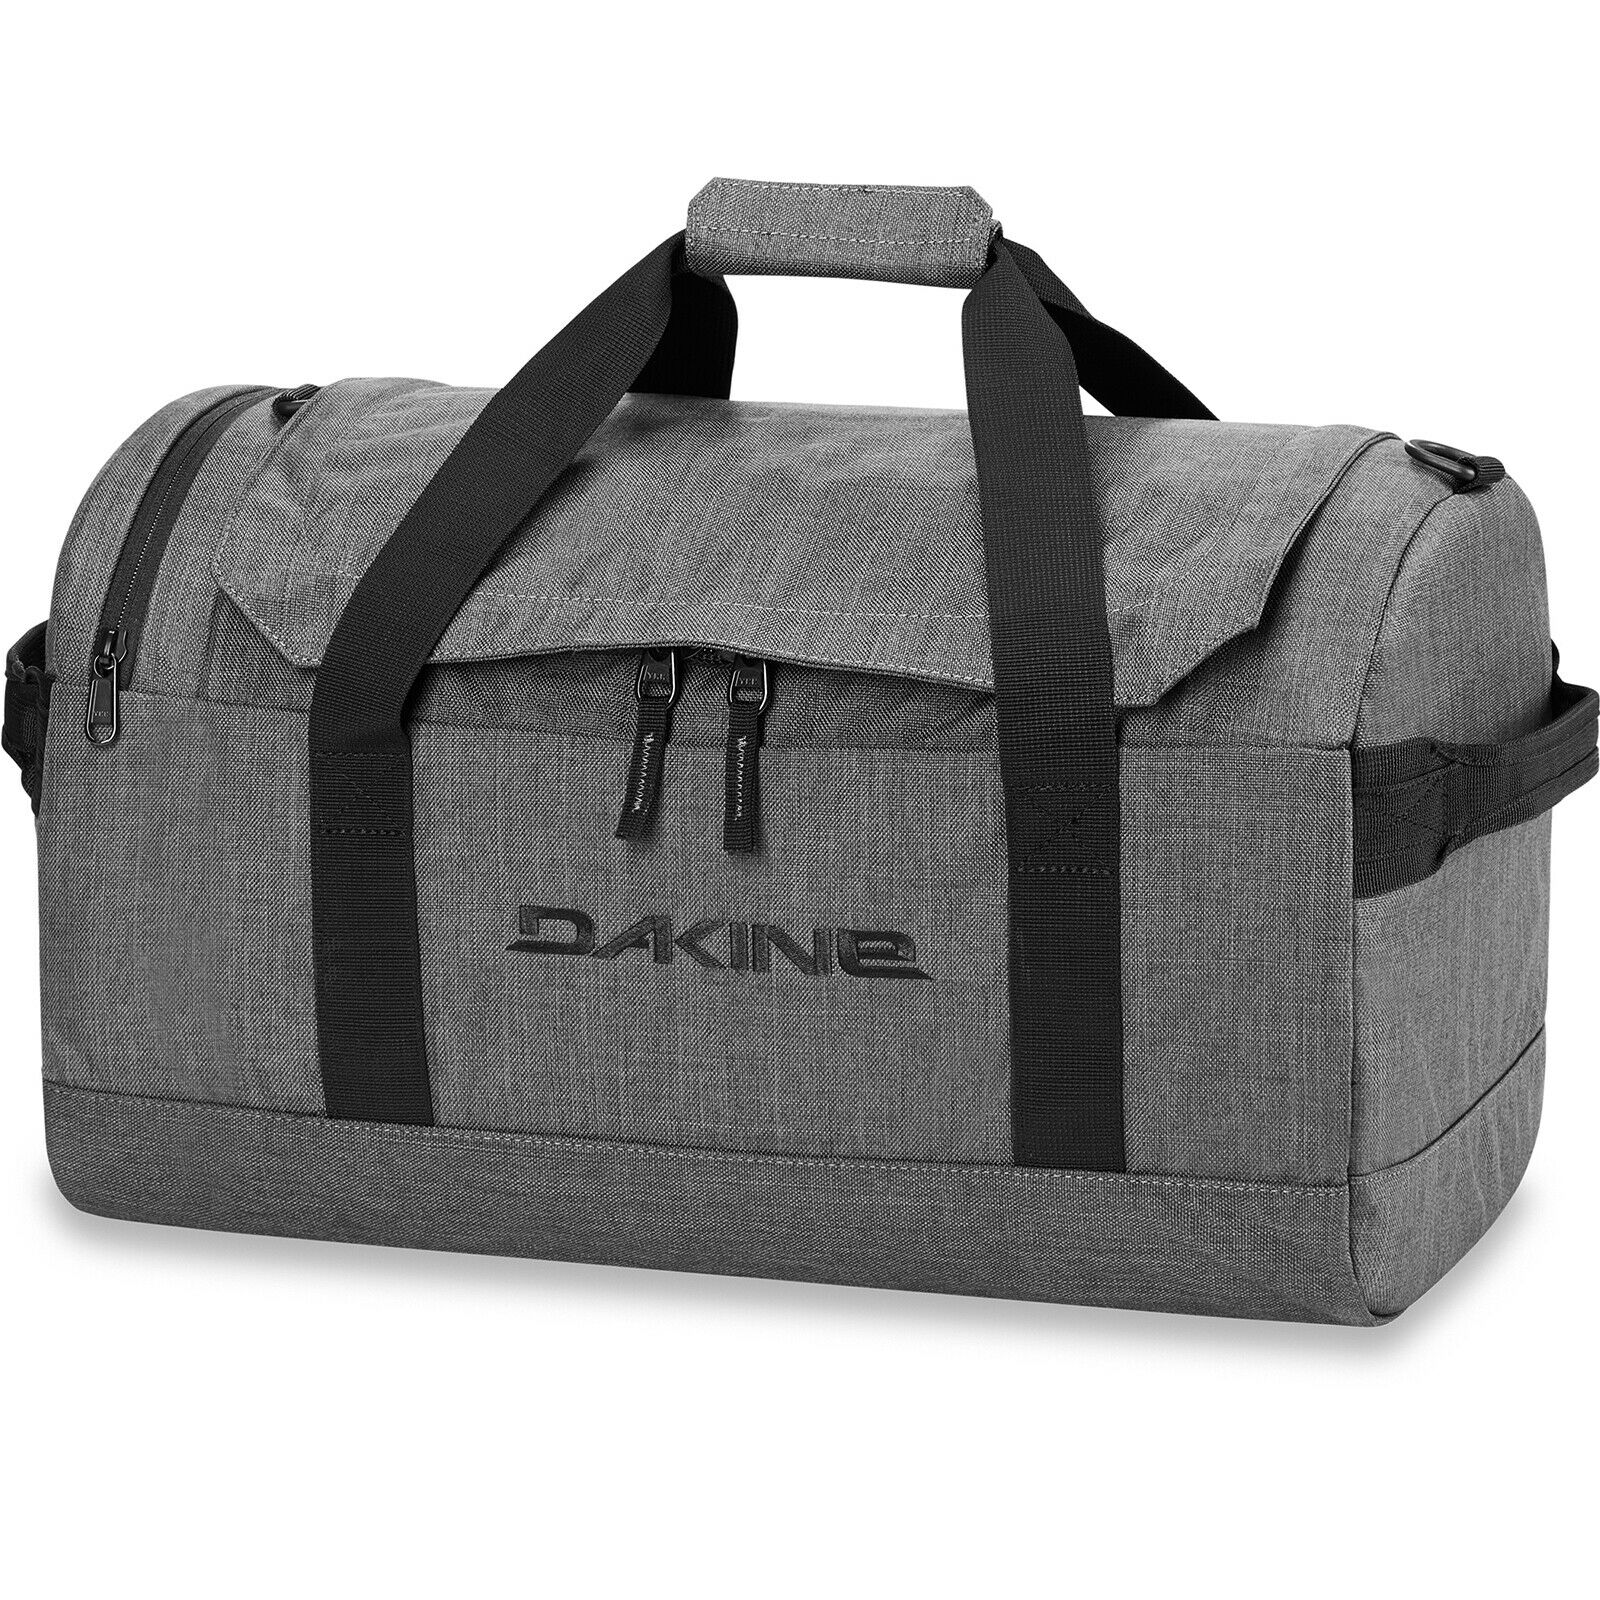 Dakine EQ 35L Duffle Bag, Carbon - $45.00